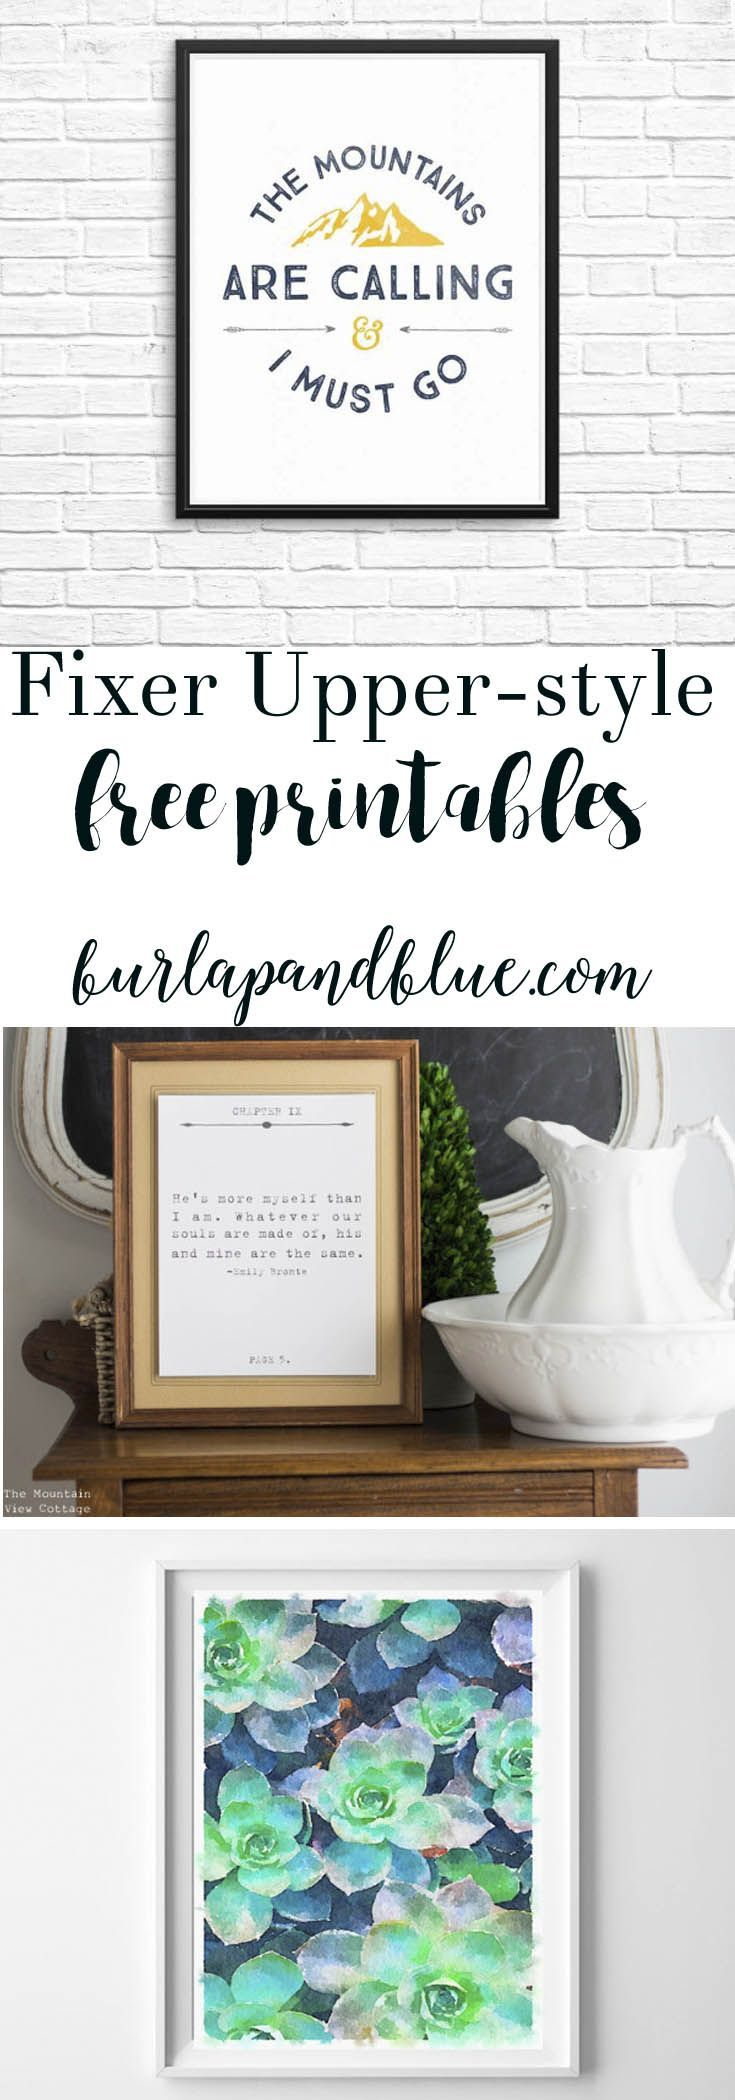 Love Fixer Upper? Sharing over 35 printable favorites in the rustic, farmhouse Fixer Upper style!